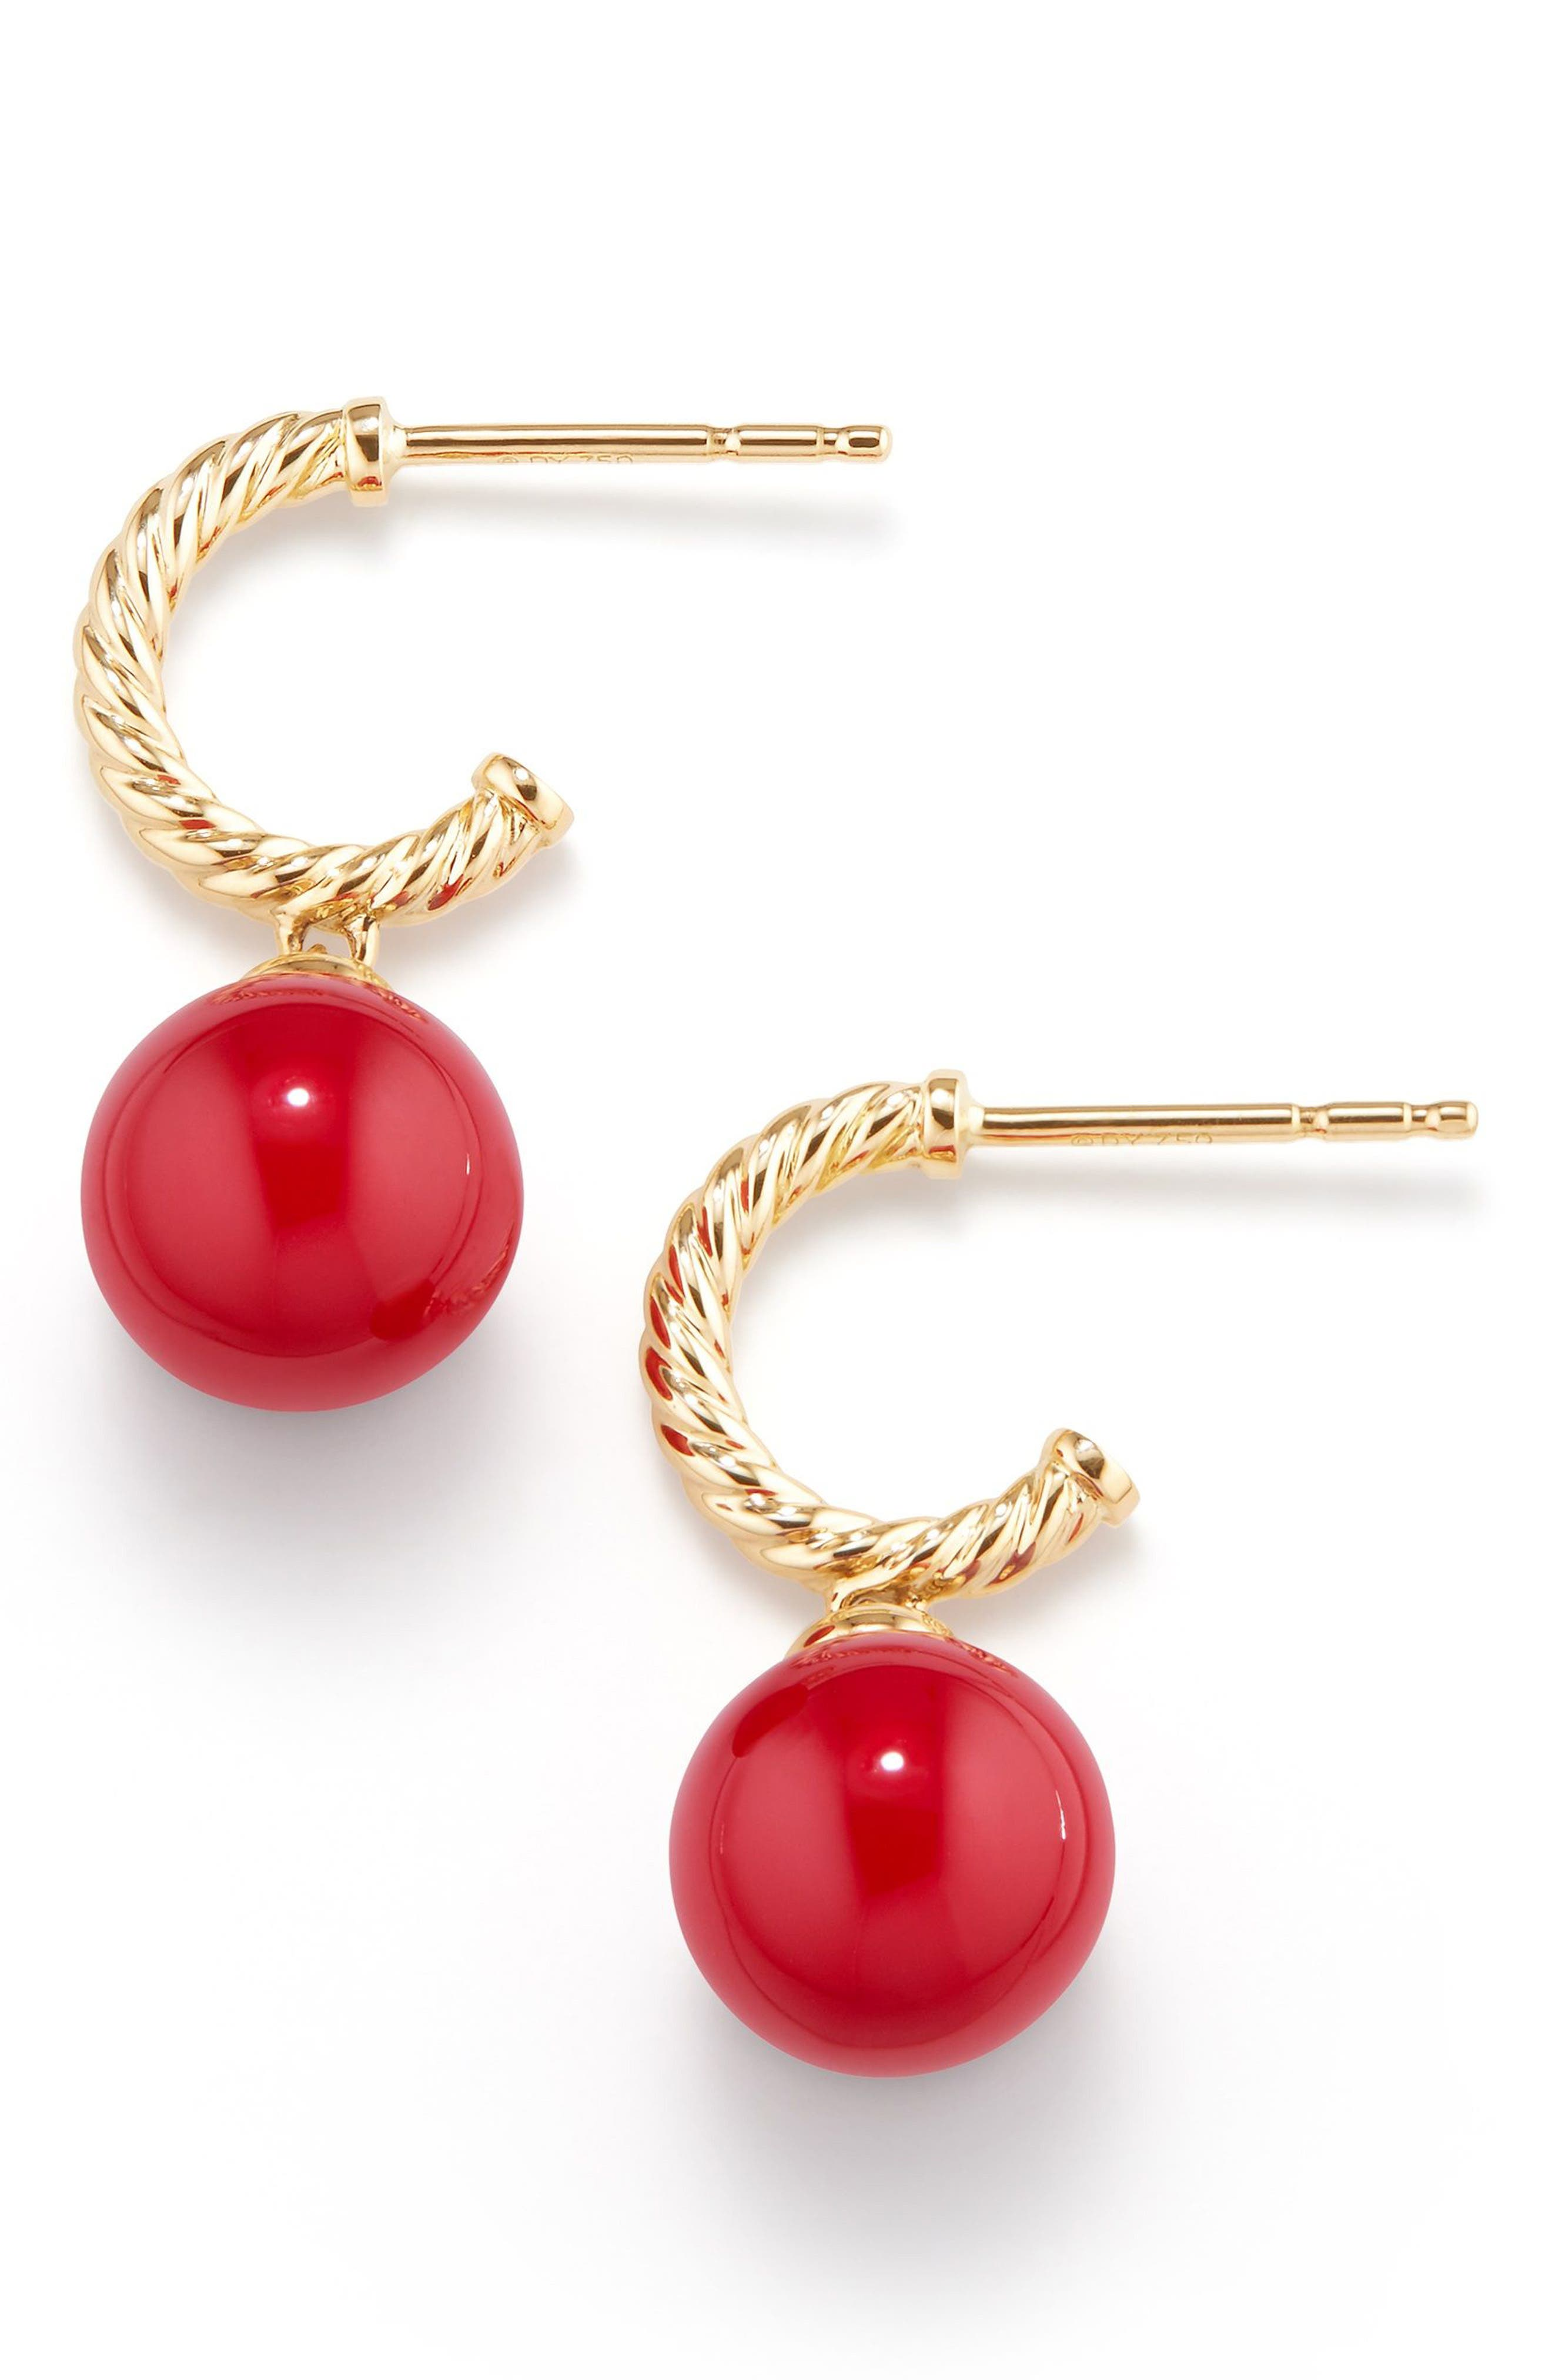 Solari Hoop Earrings with 18K Gold and Red Enamel,                             Main thumbnail 1, color,                             710